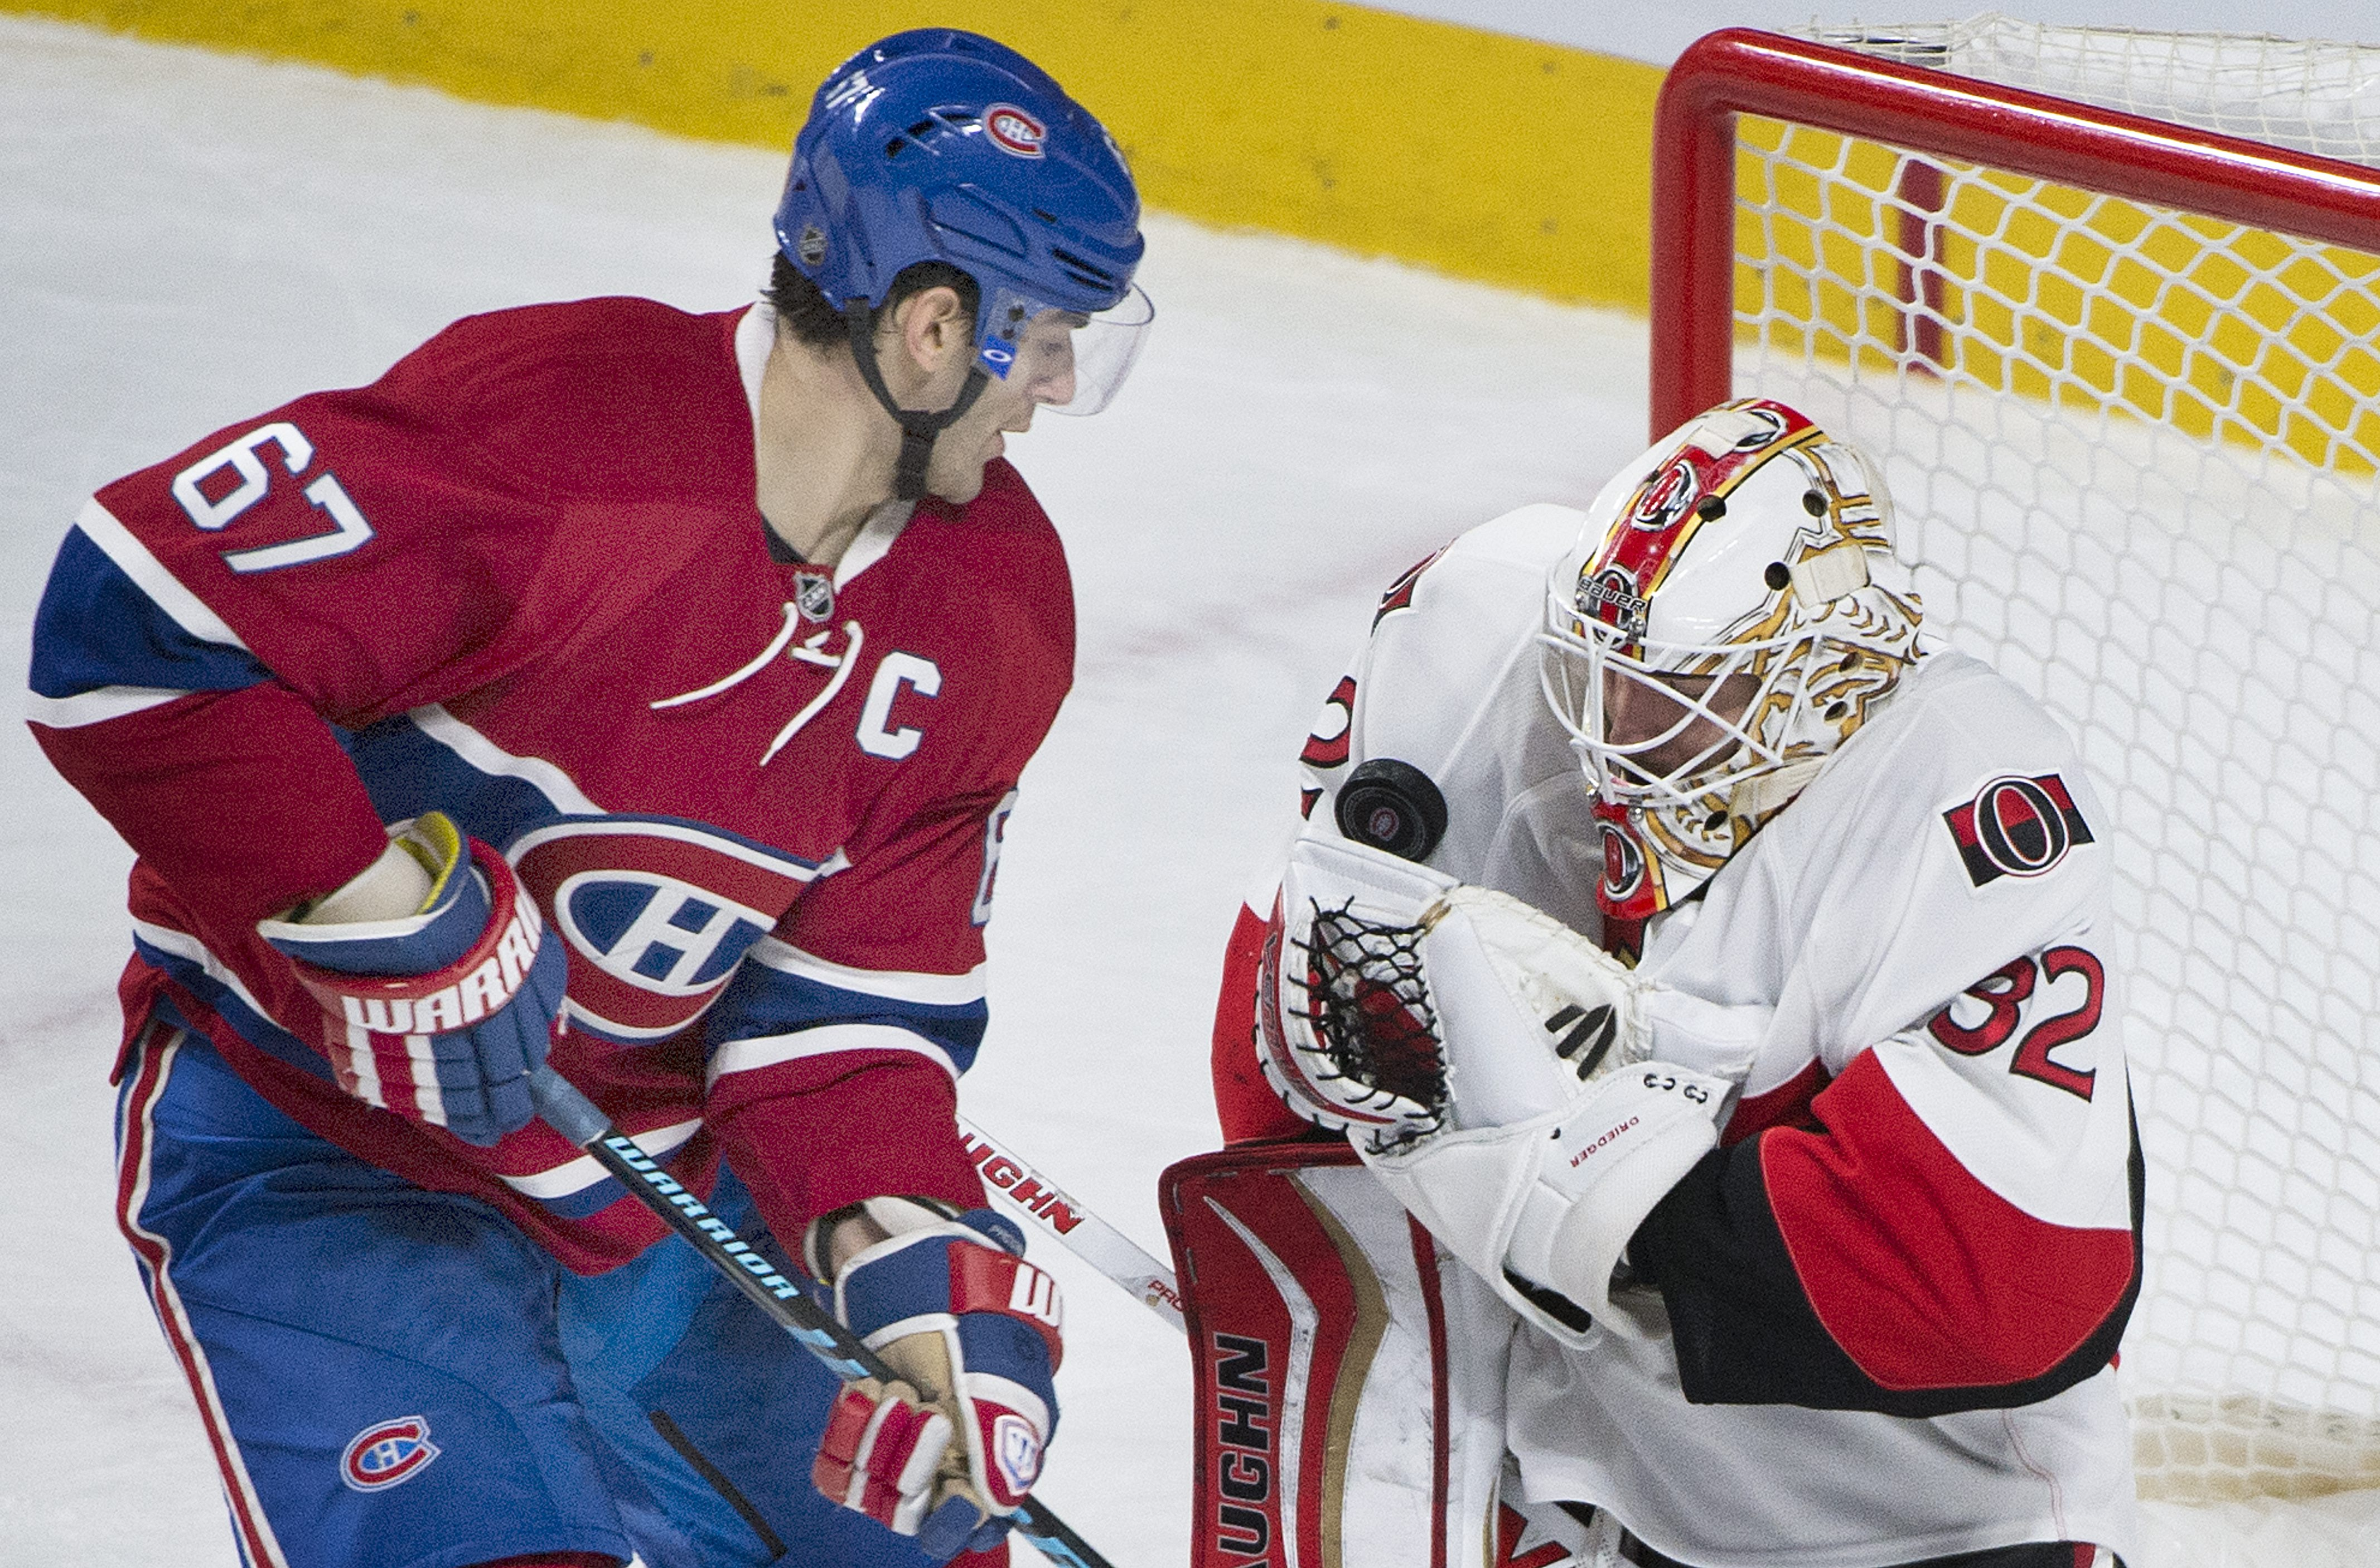 Montreal Canadiens' captain Max Pacioretty moves in on Ottawa Senators' goalie Chris Driedger during second period NHL hockey action, in Montreal, on Saturday, Dec. 12, 2015. (Graham Hughes/The Canadian Press via AP)